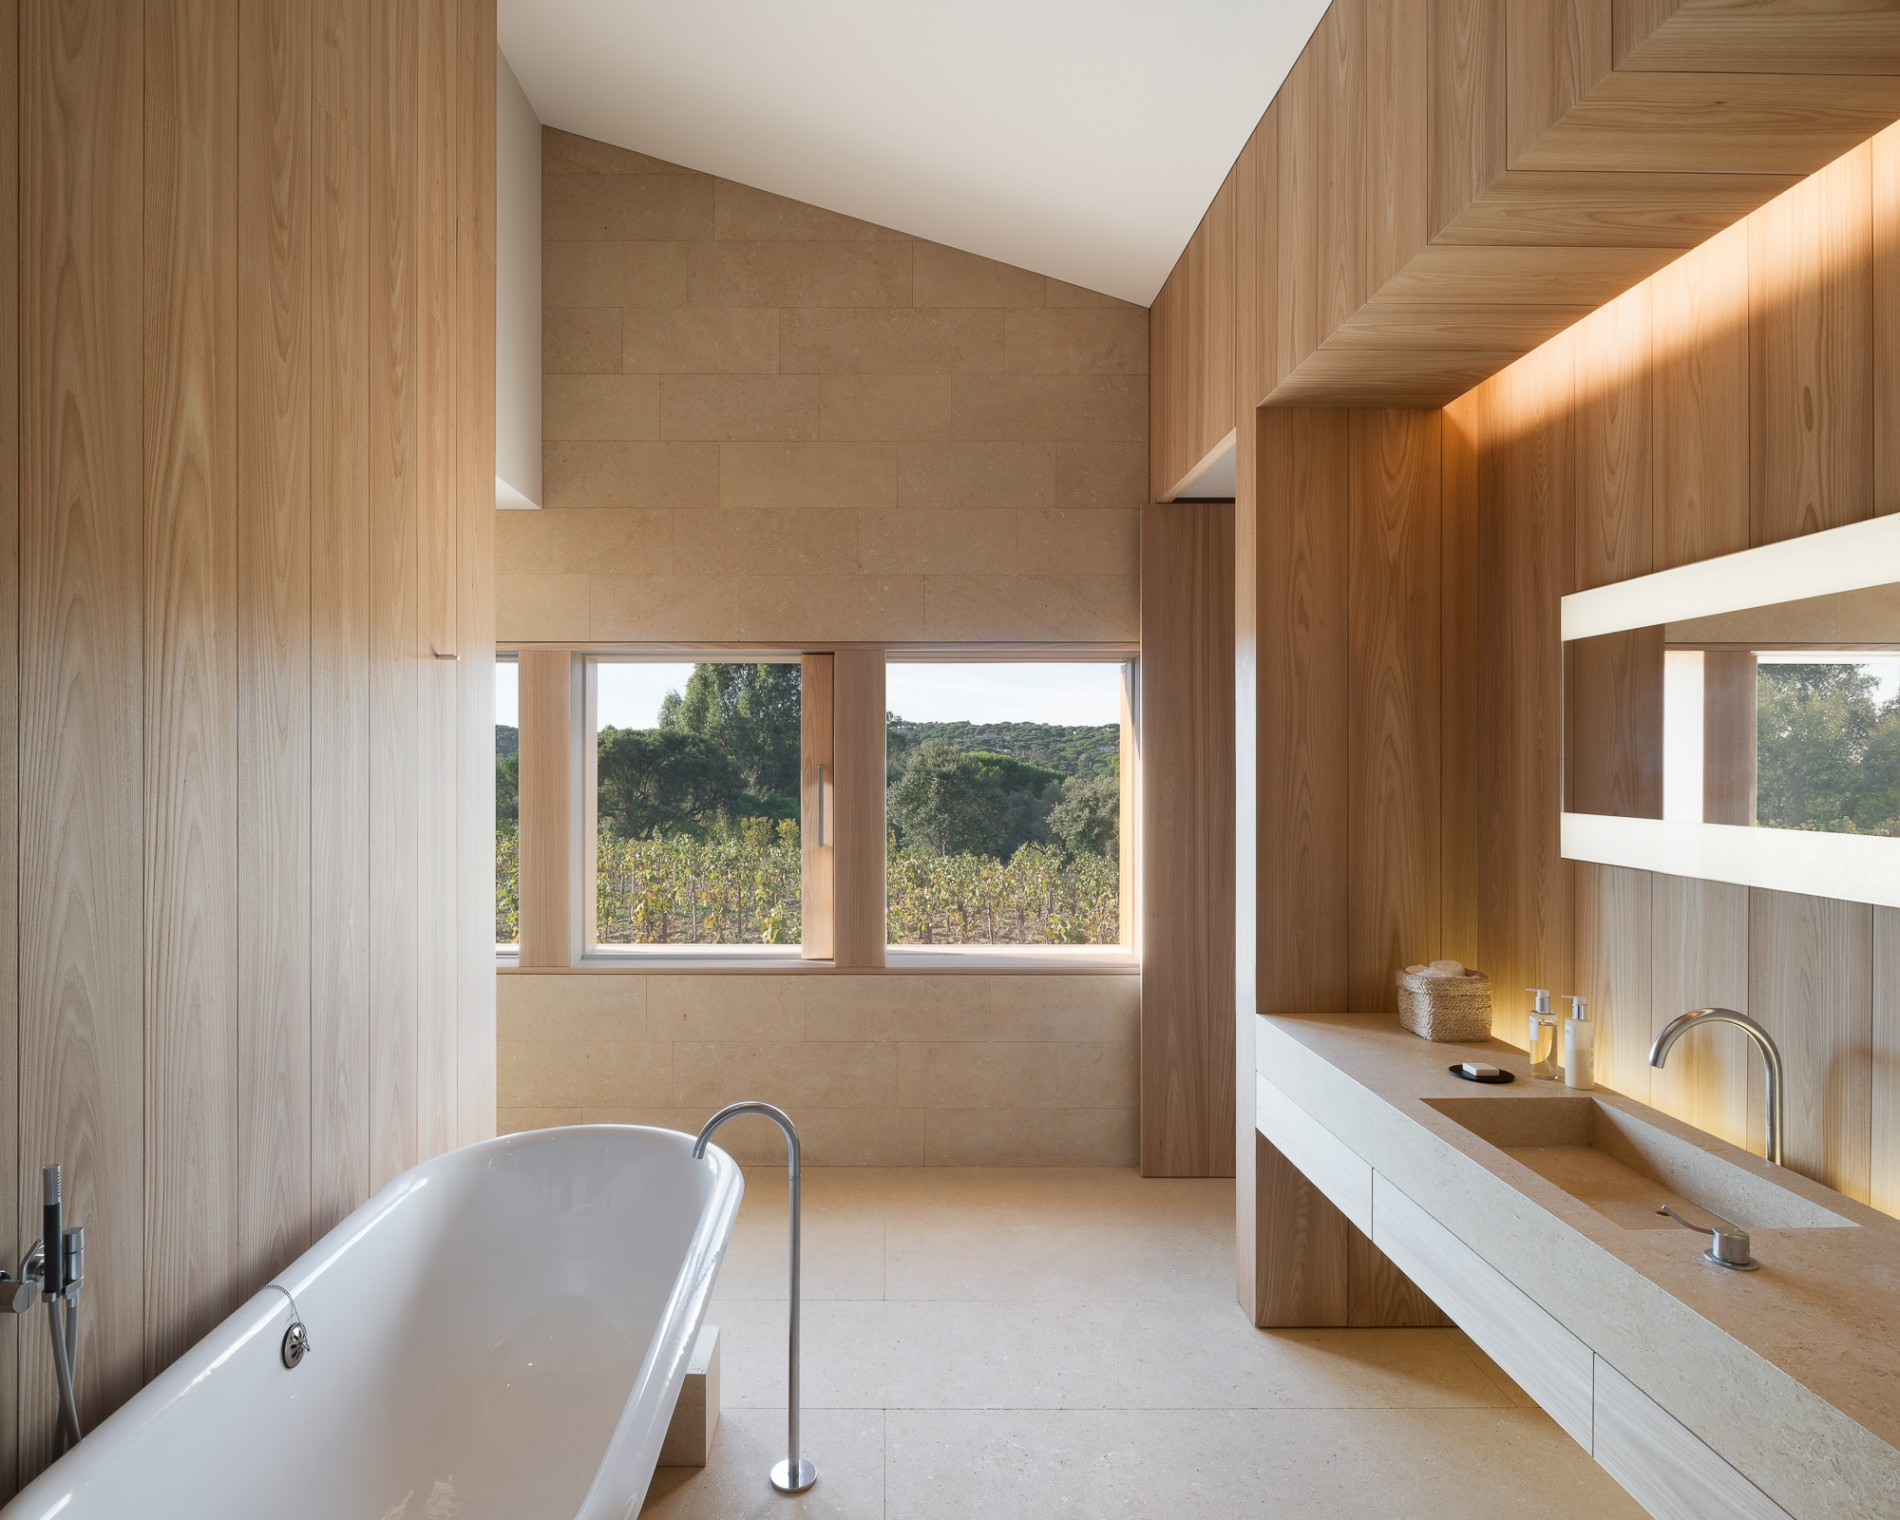 Bathroom John minimumjohn pawson | l'exploreur